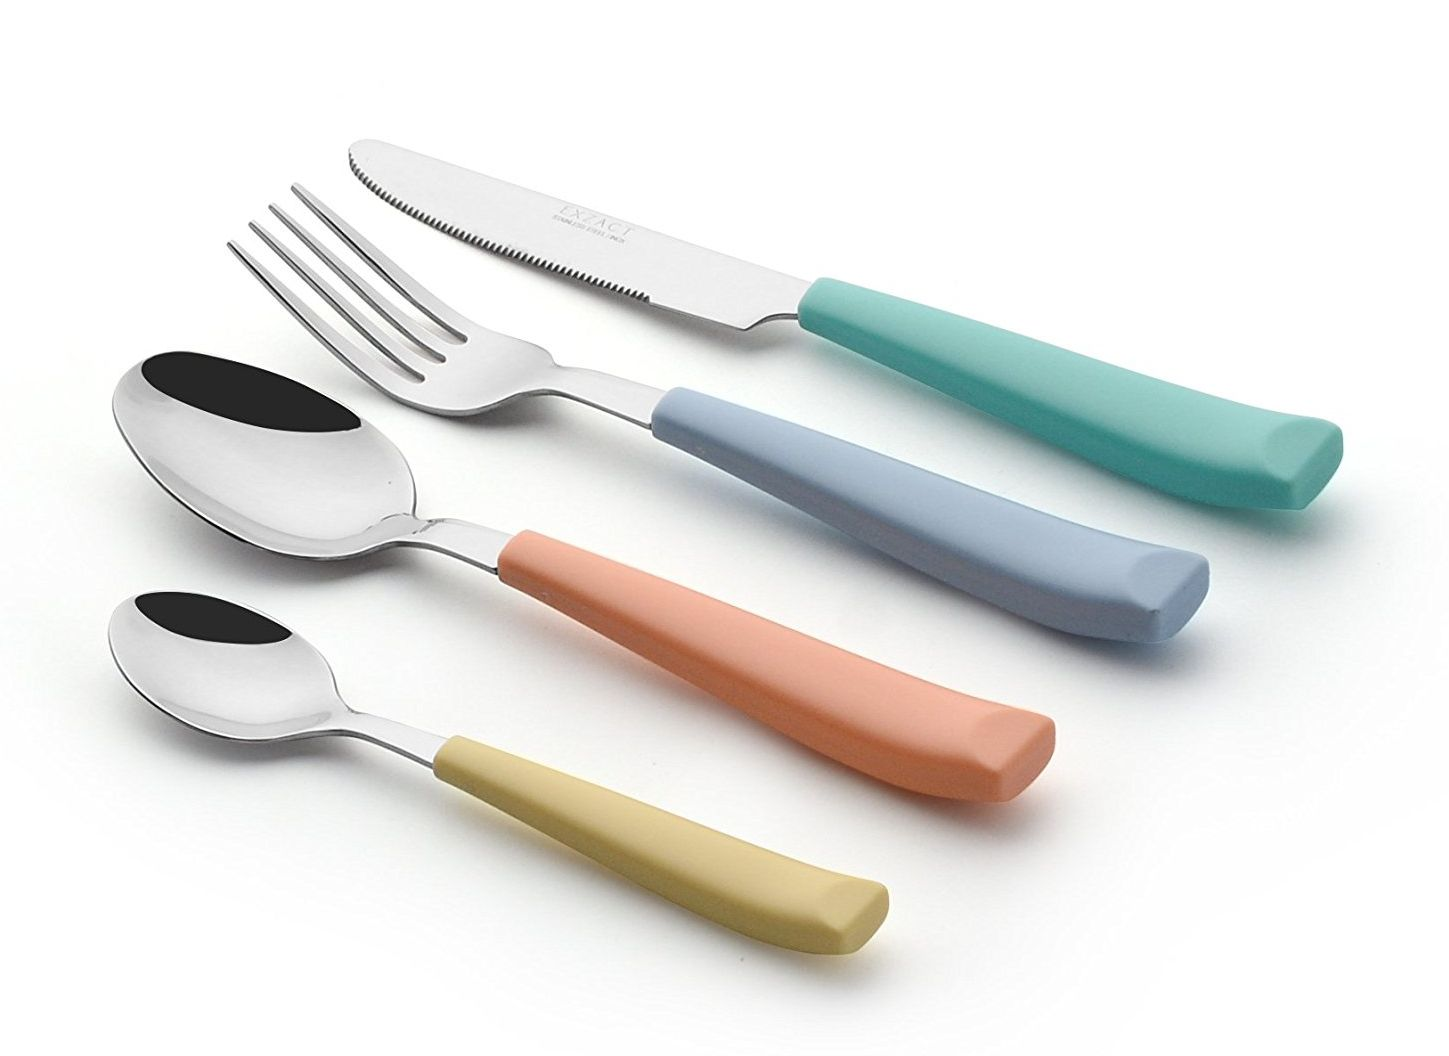 Cutlery - Stainless Steel With Vibrantly Coloured Plastic Wide Handles